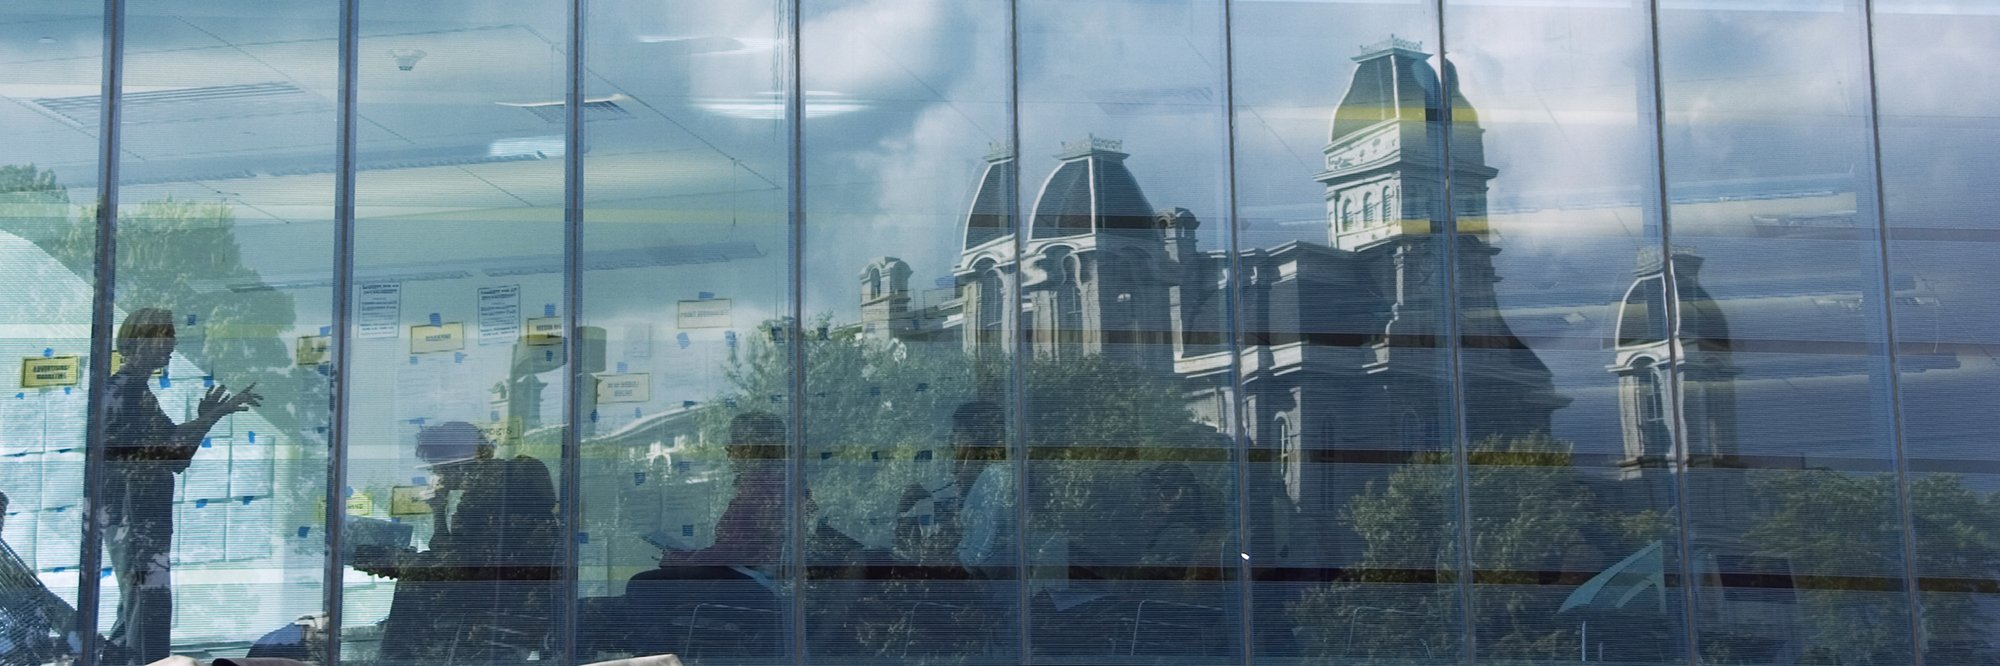 window reflection of the Hall of Languages